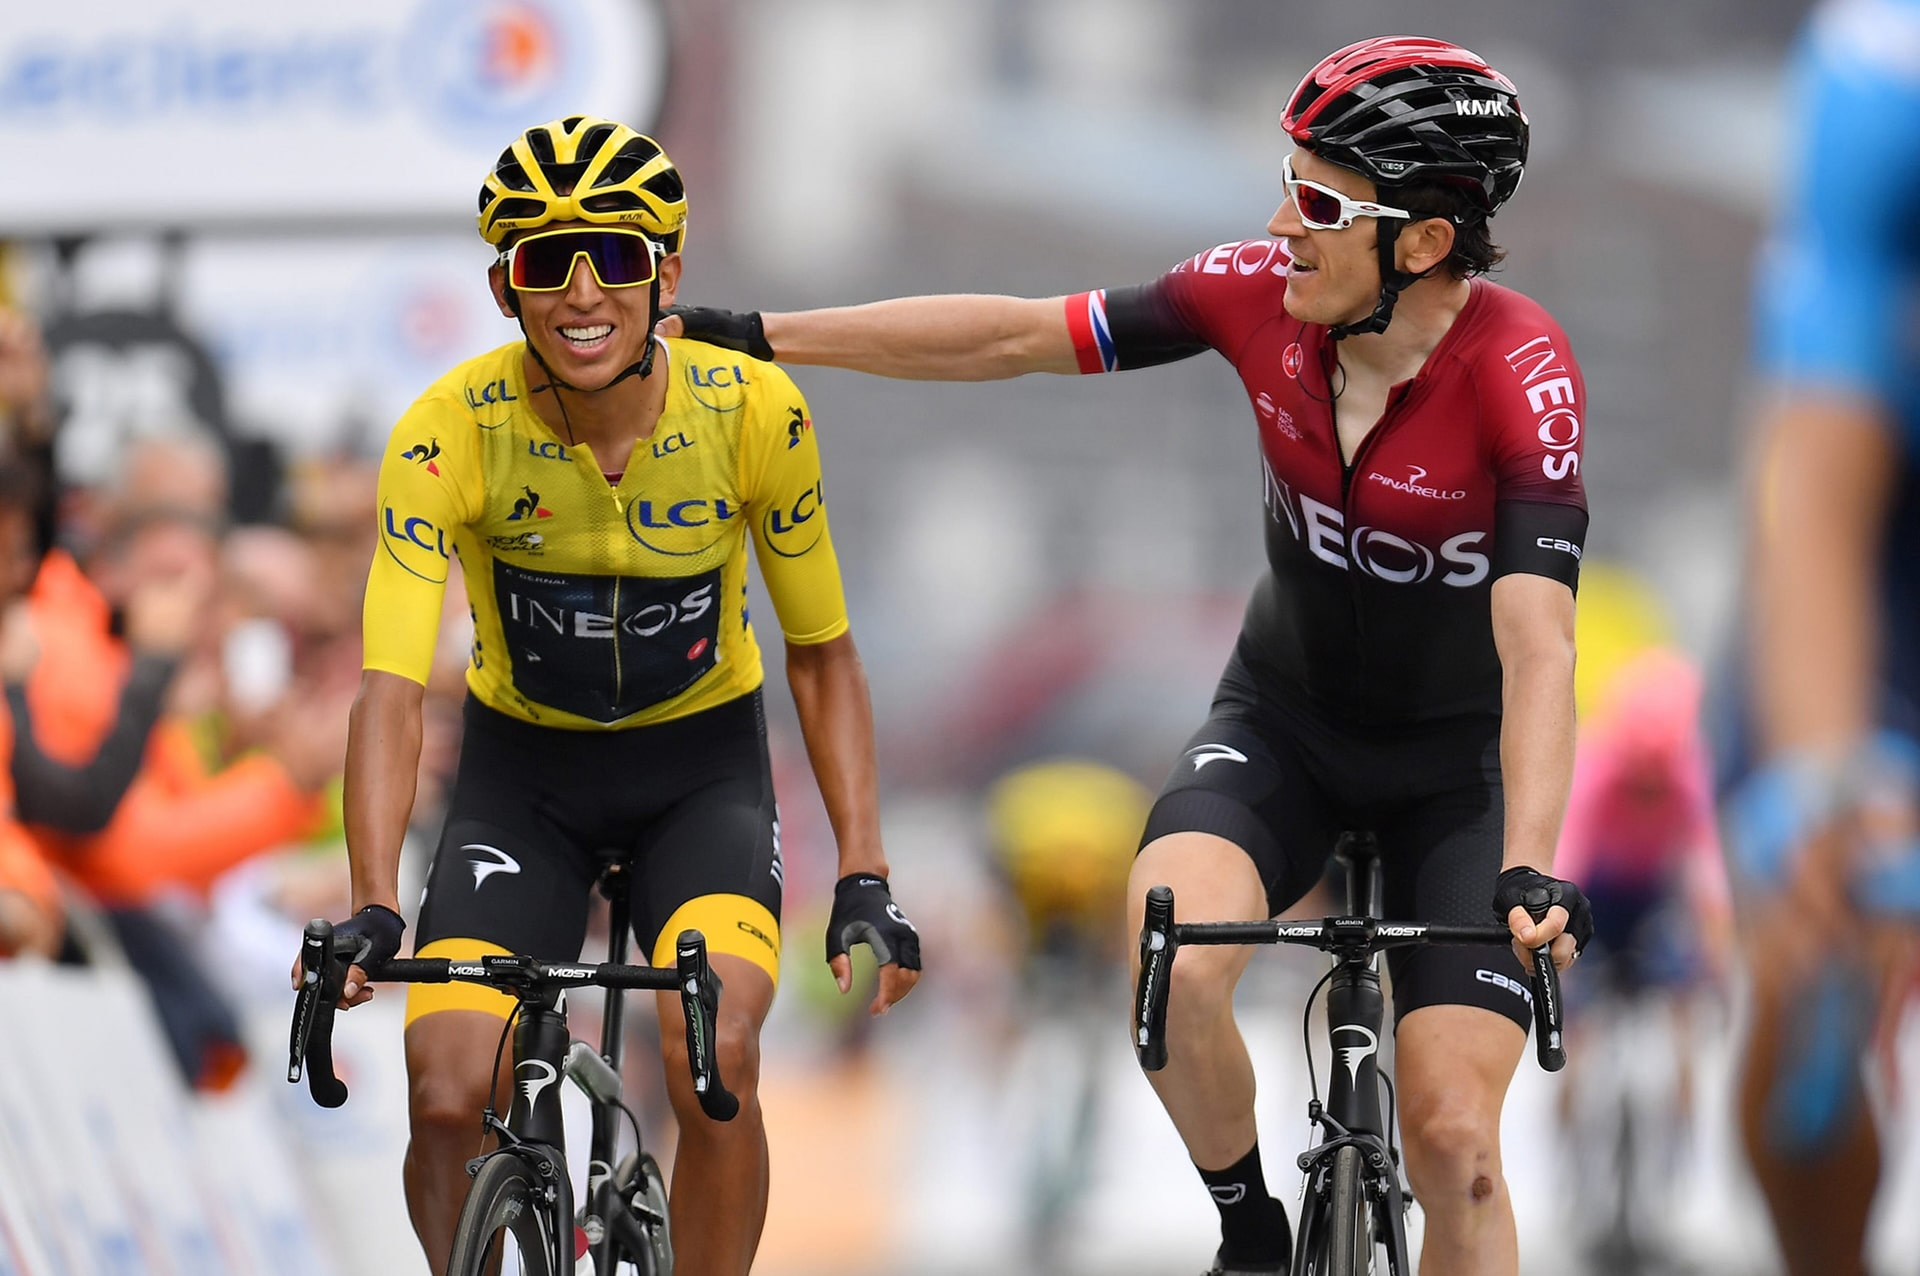 2019 Tour de France winner Egan Bernal with Geraint Thomas